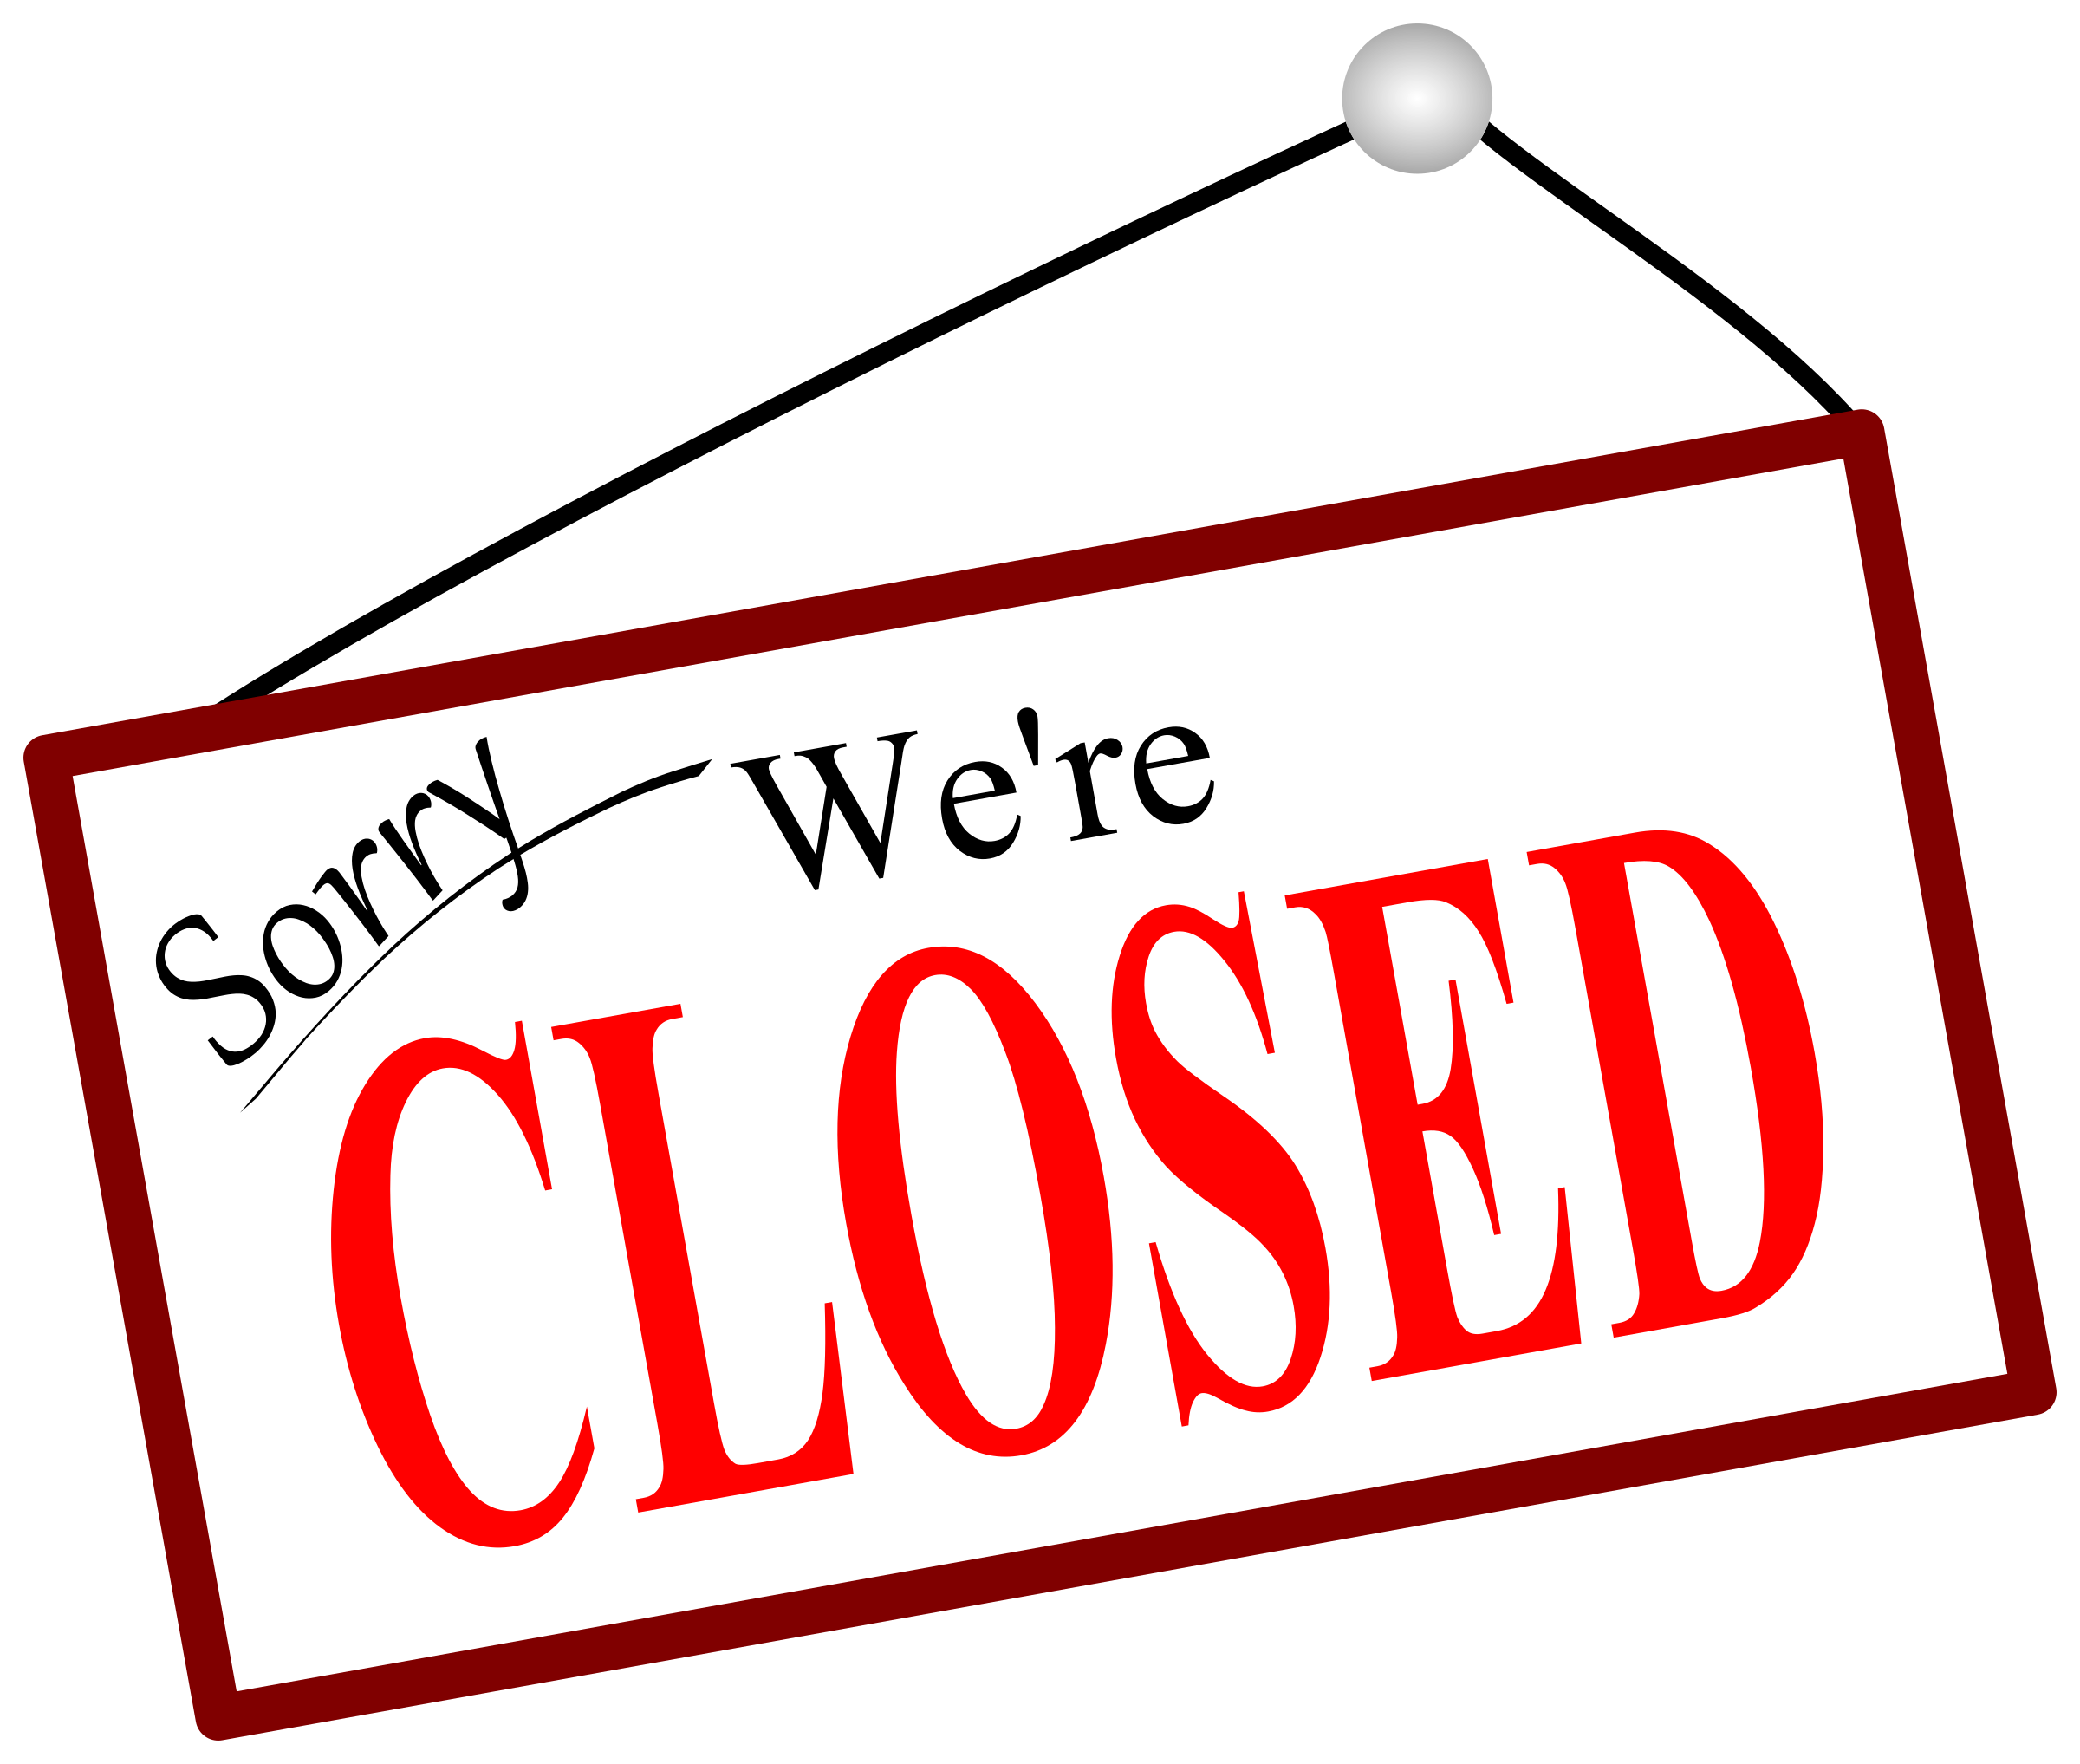 Sorry We\'re closed sign vector clipart image.